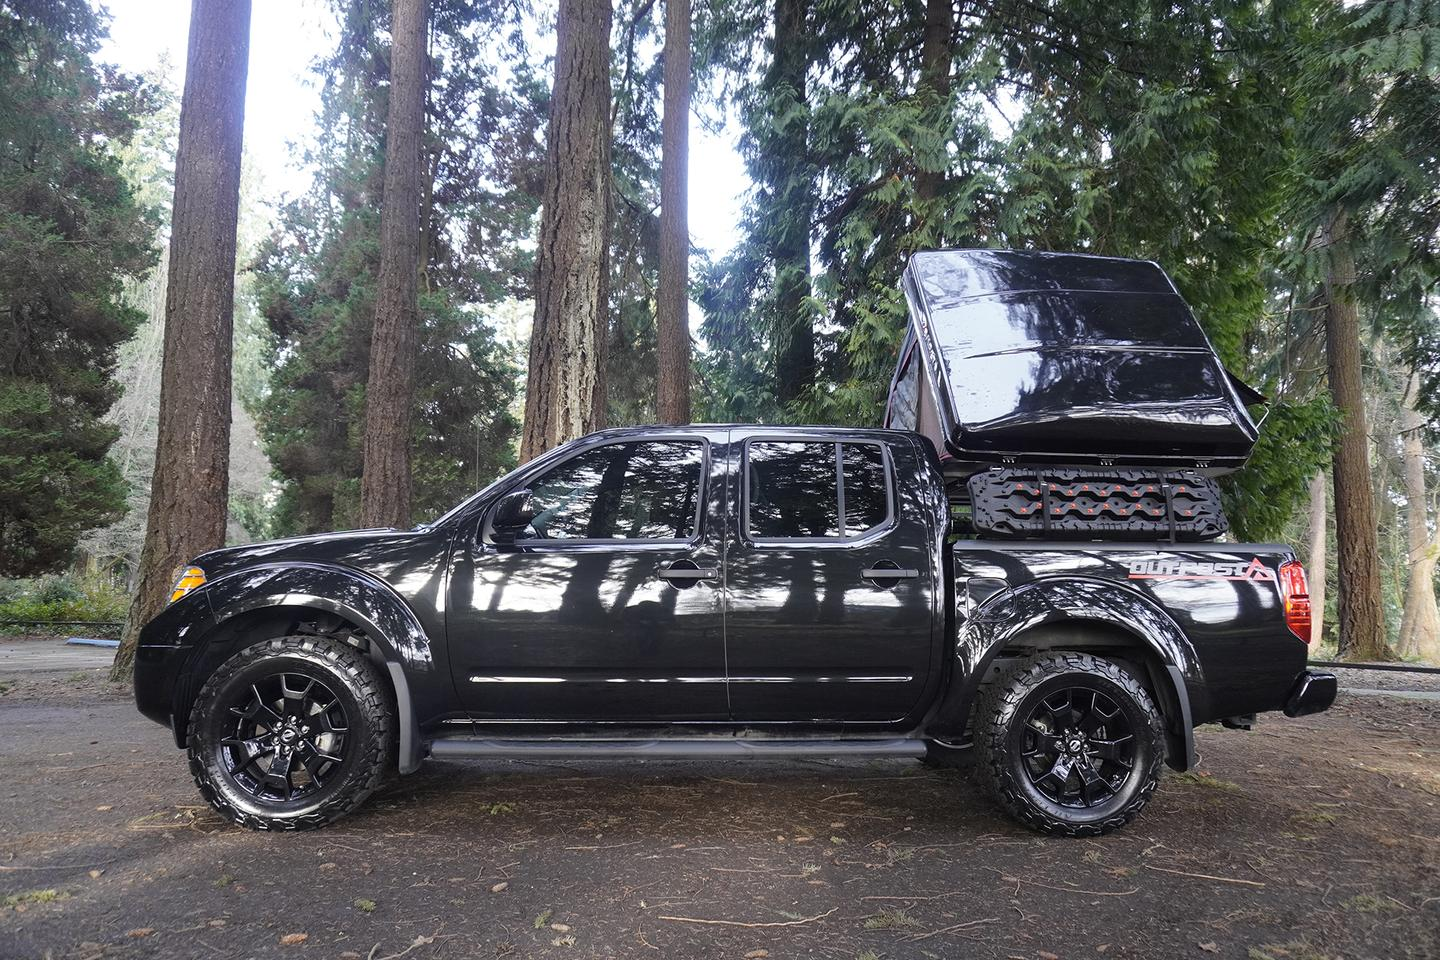 Caravan Outfitter combines a new 4x4 pickup, rooftop tent, bed rack and other equipment into a compelling overlander it calls the Outpost